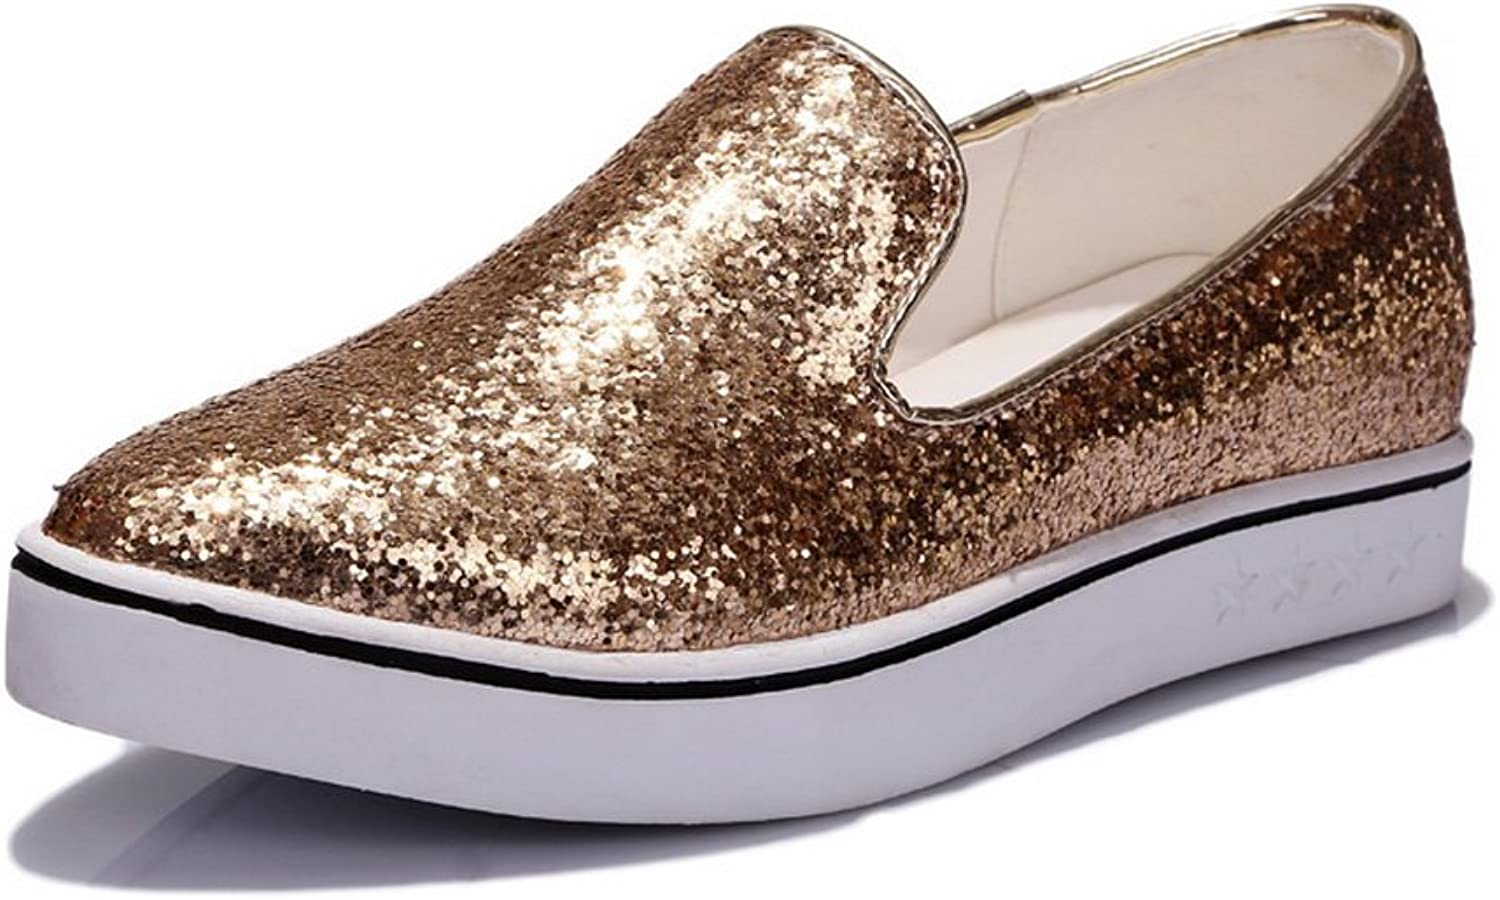 1TO9 Ladies Heighten Inside Sequins Pull-On gold Polyurethane Pumps-shoes - 7.5 B(M) US